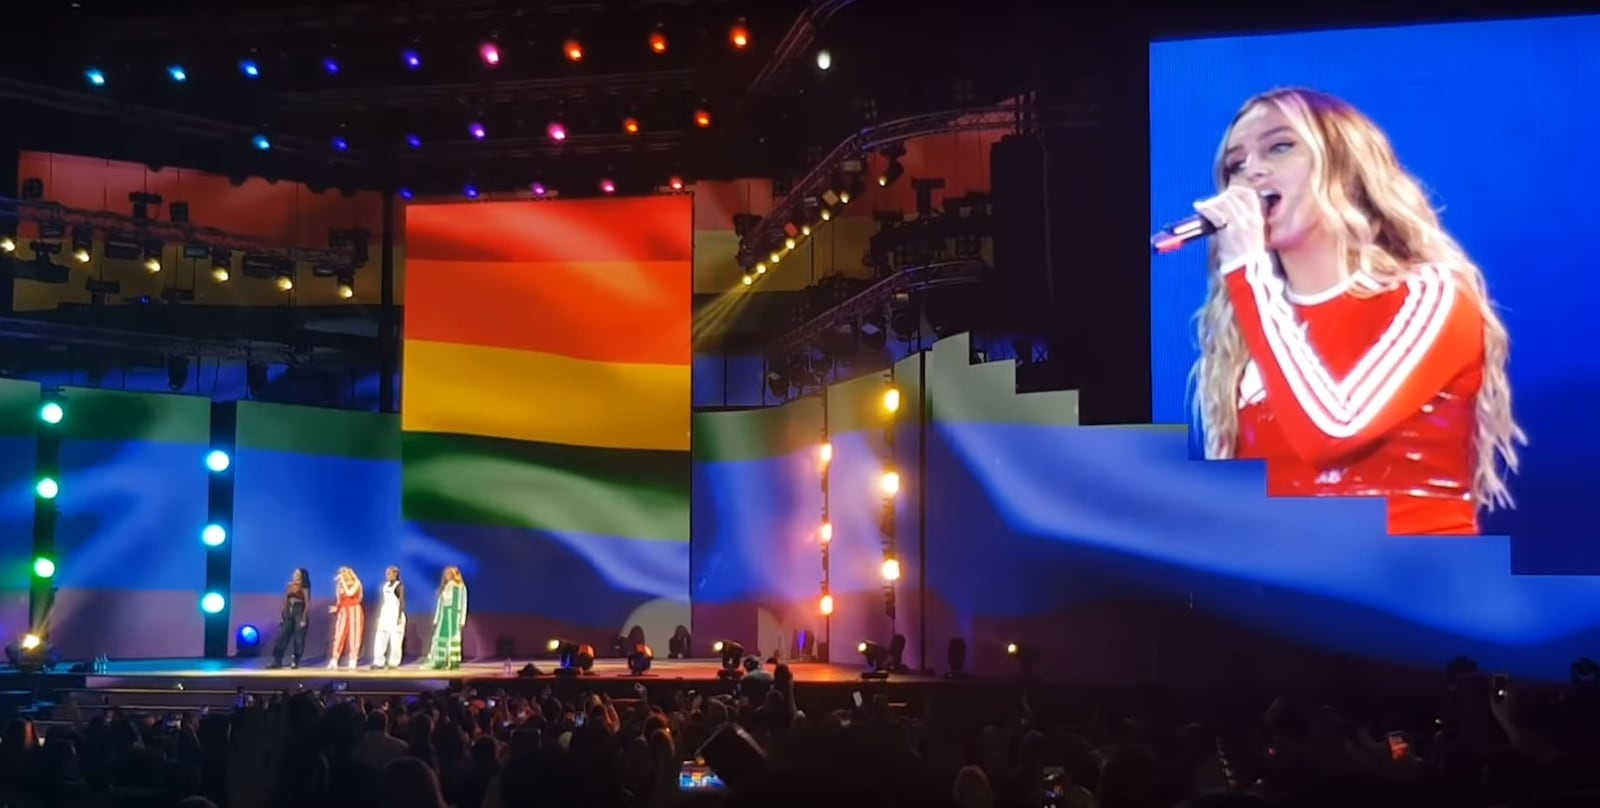 Little Mix performing in Dubai with rainbow flag